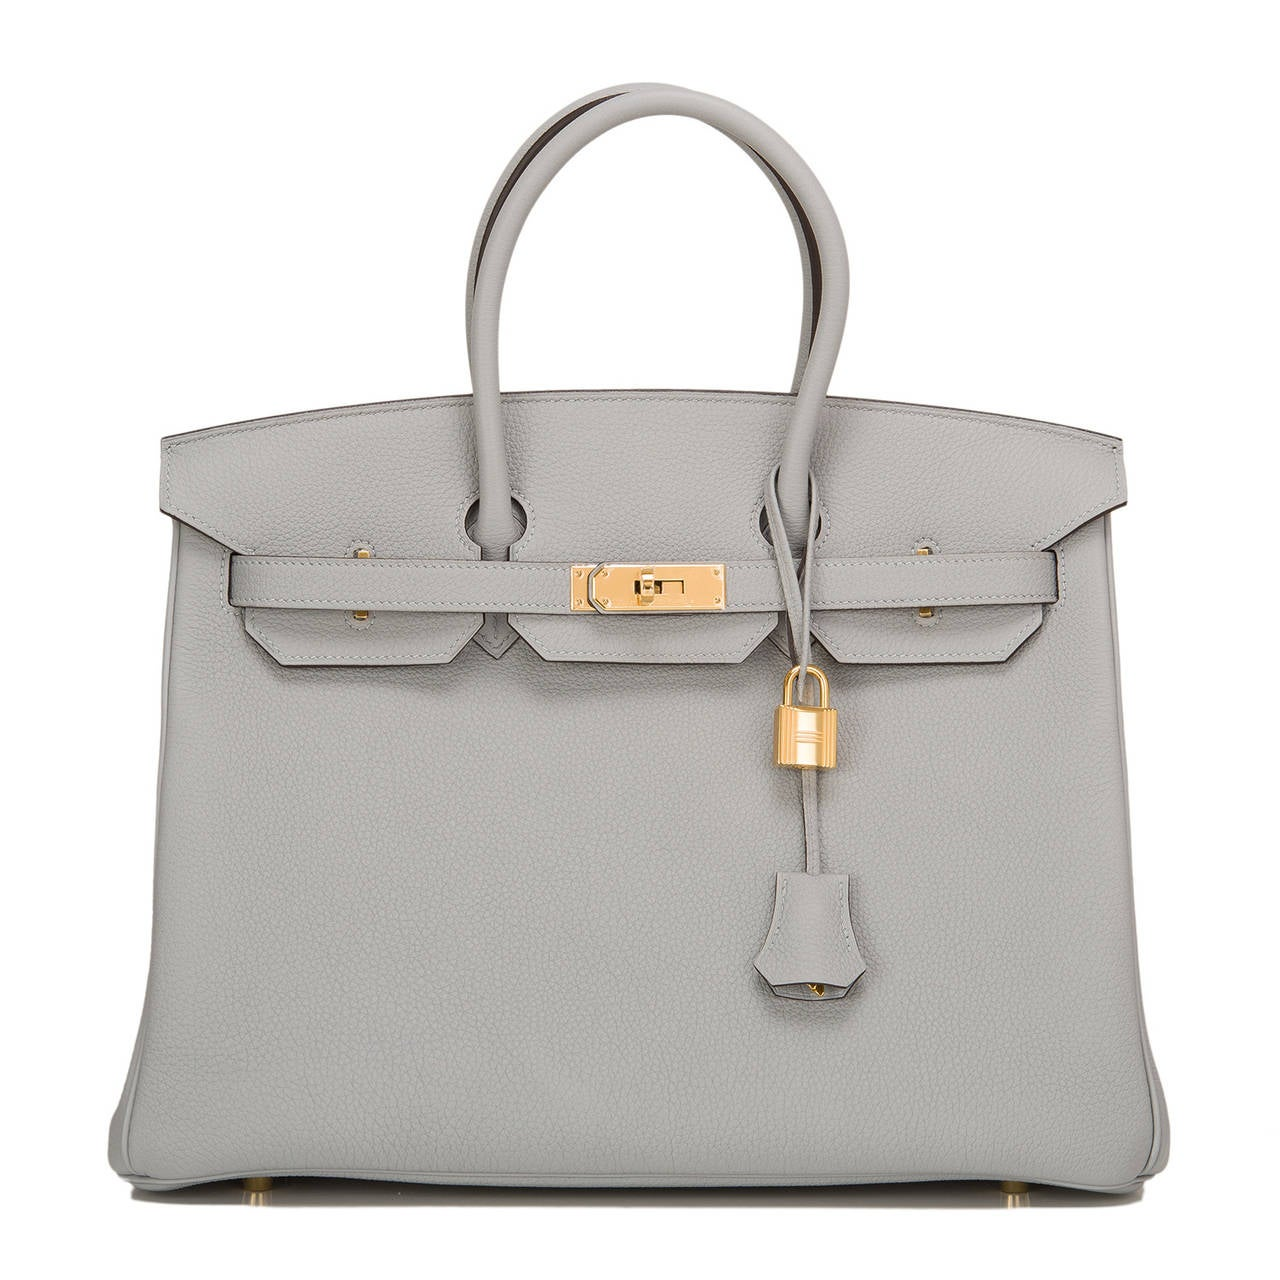 Hermes Blue Glacier Birkin 35cm in togo (bull) leather with gold hardware.